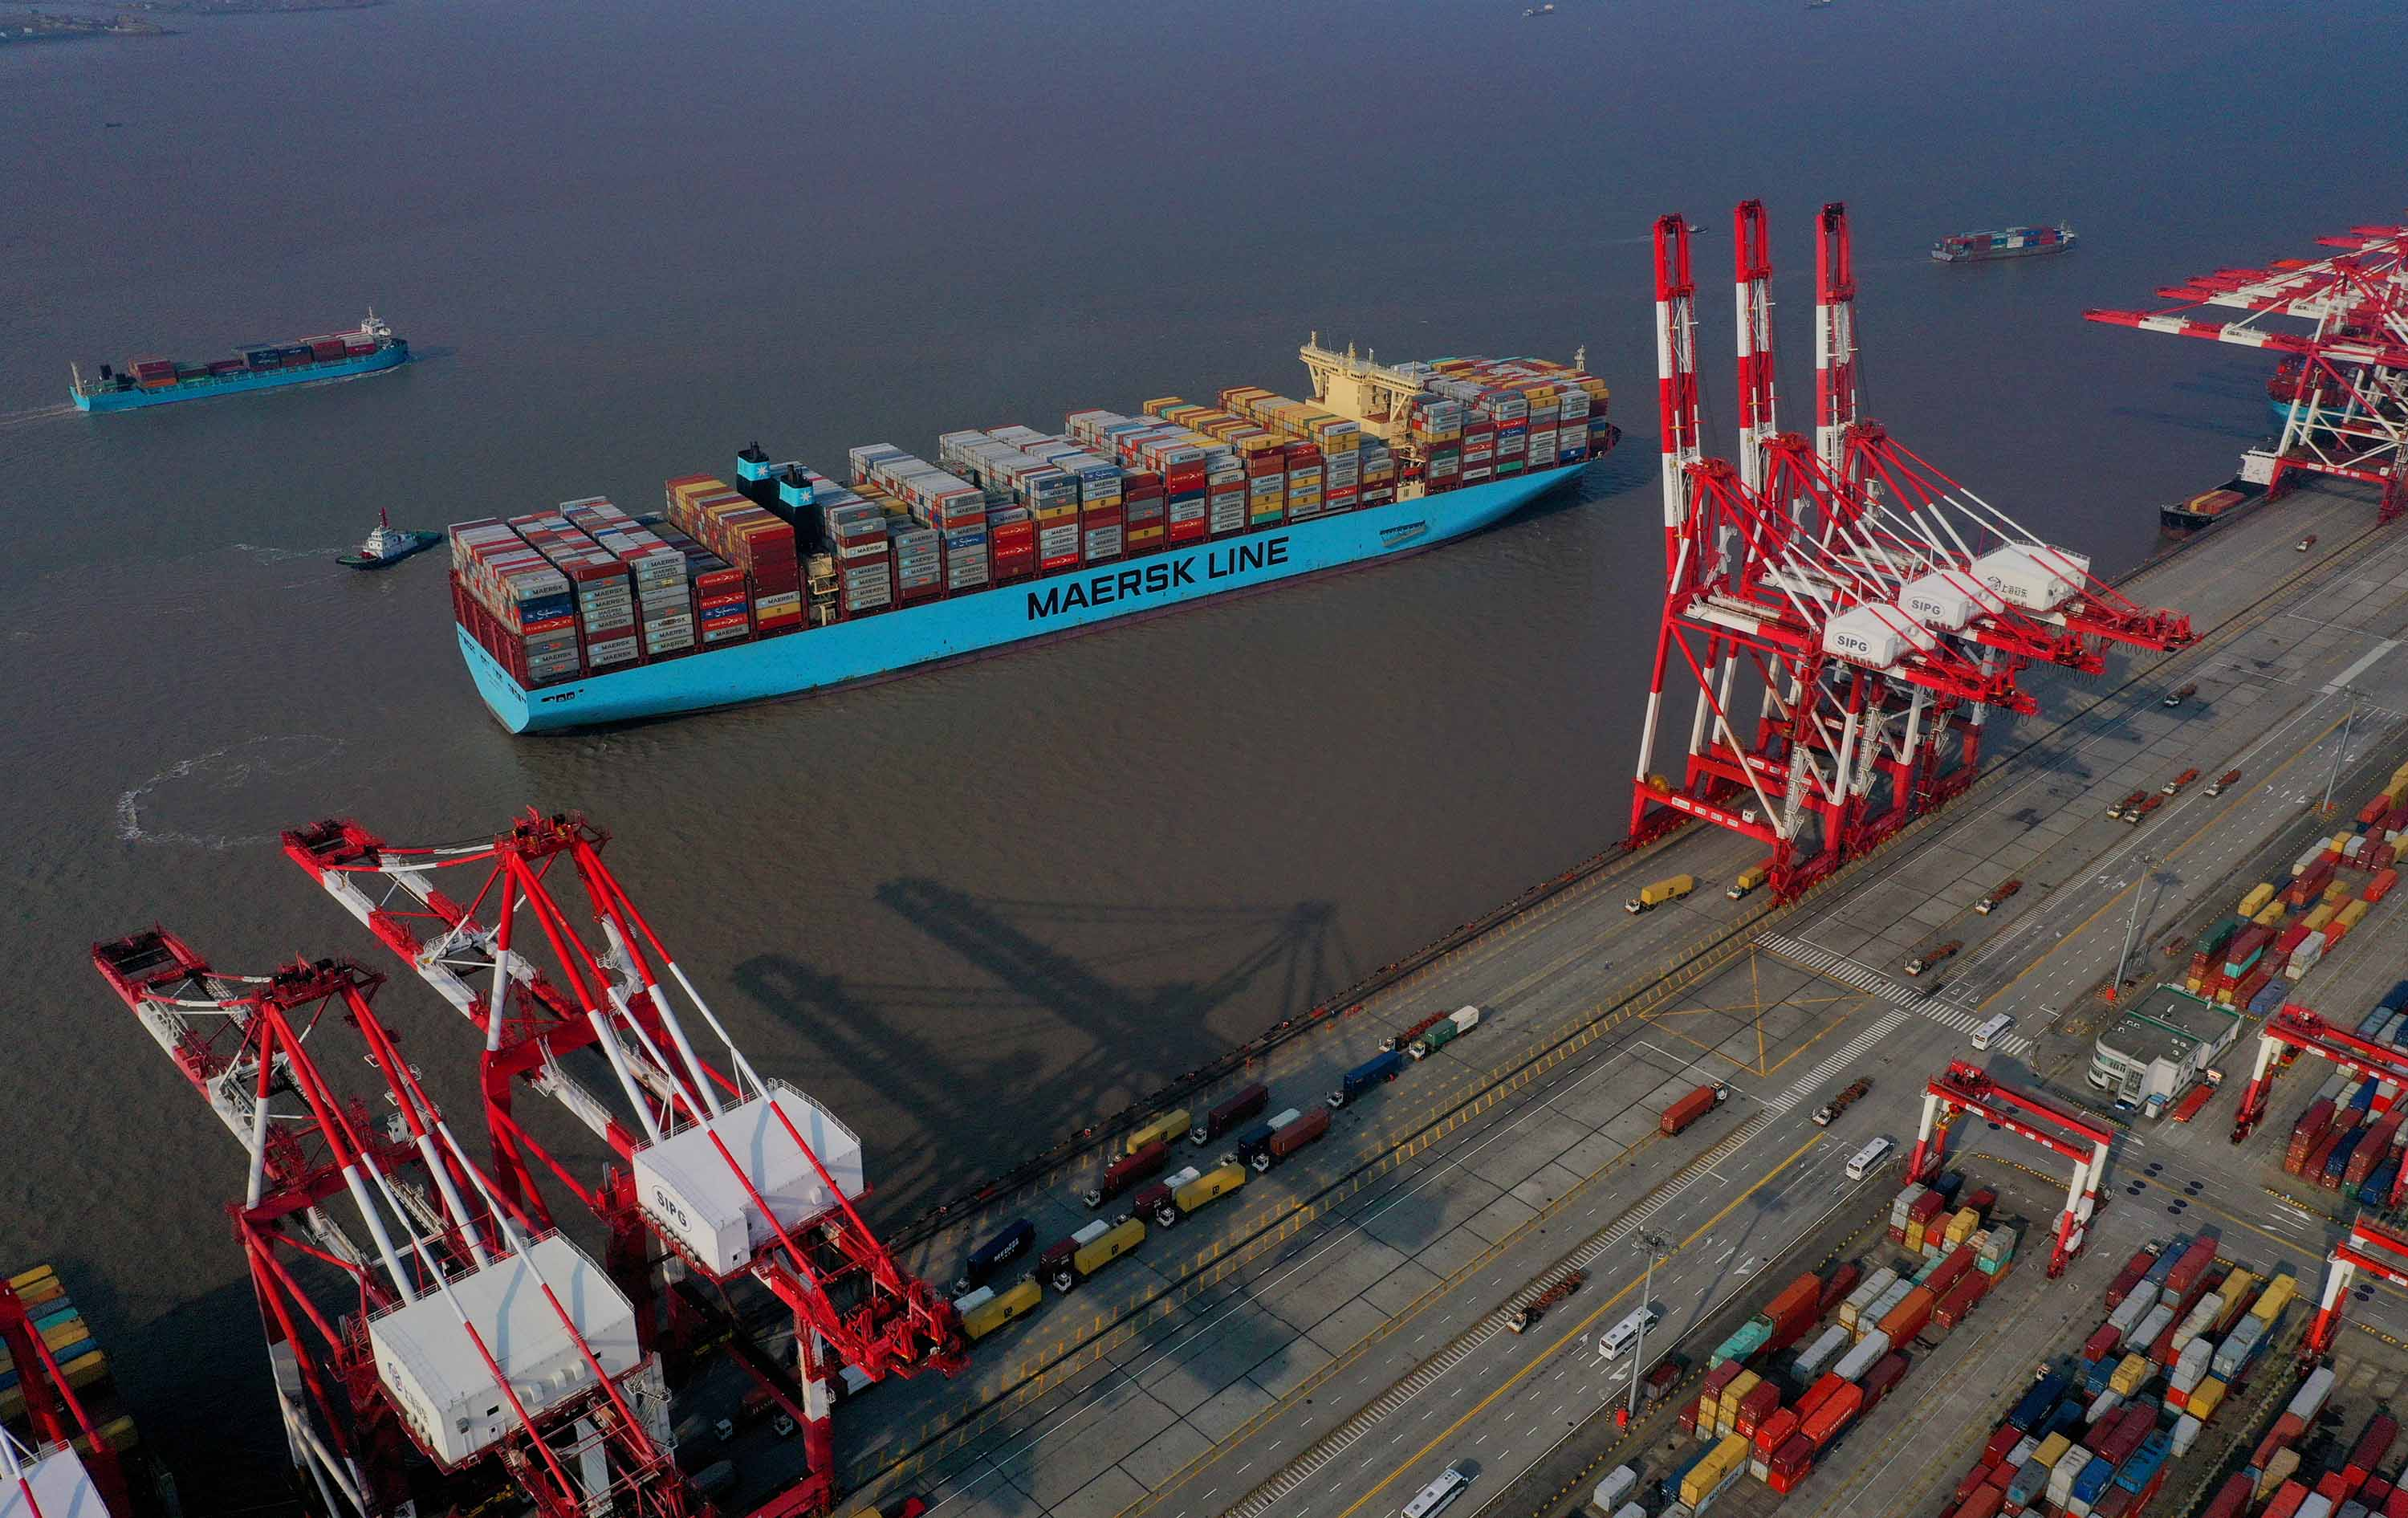 Maersk operates massive container ships. It's canceled 50 sailings over coronavirus